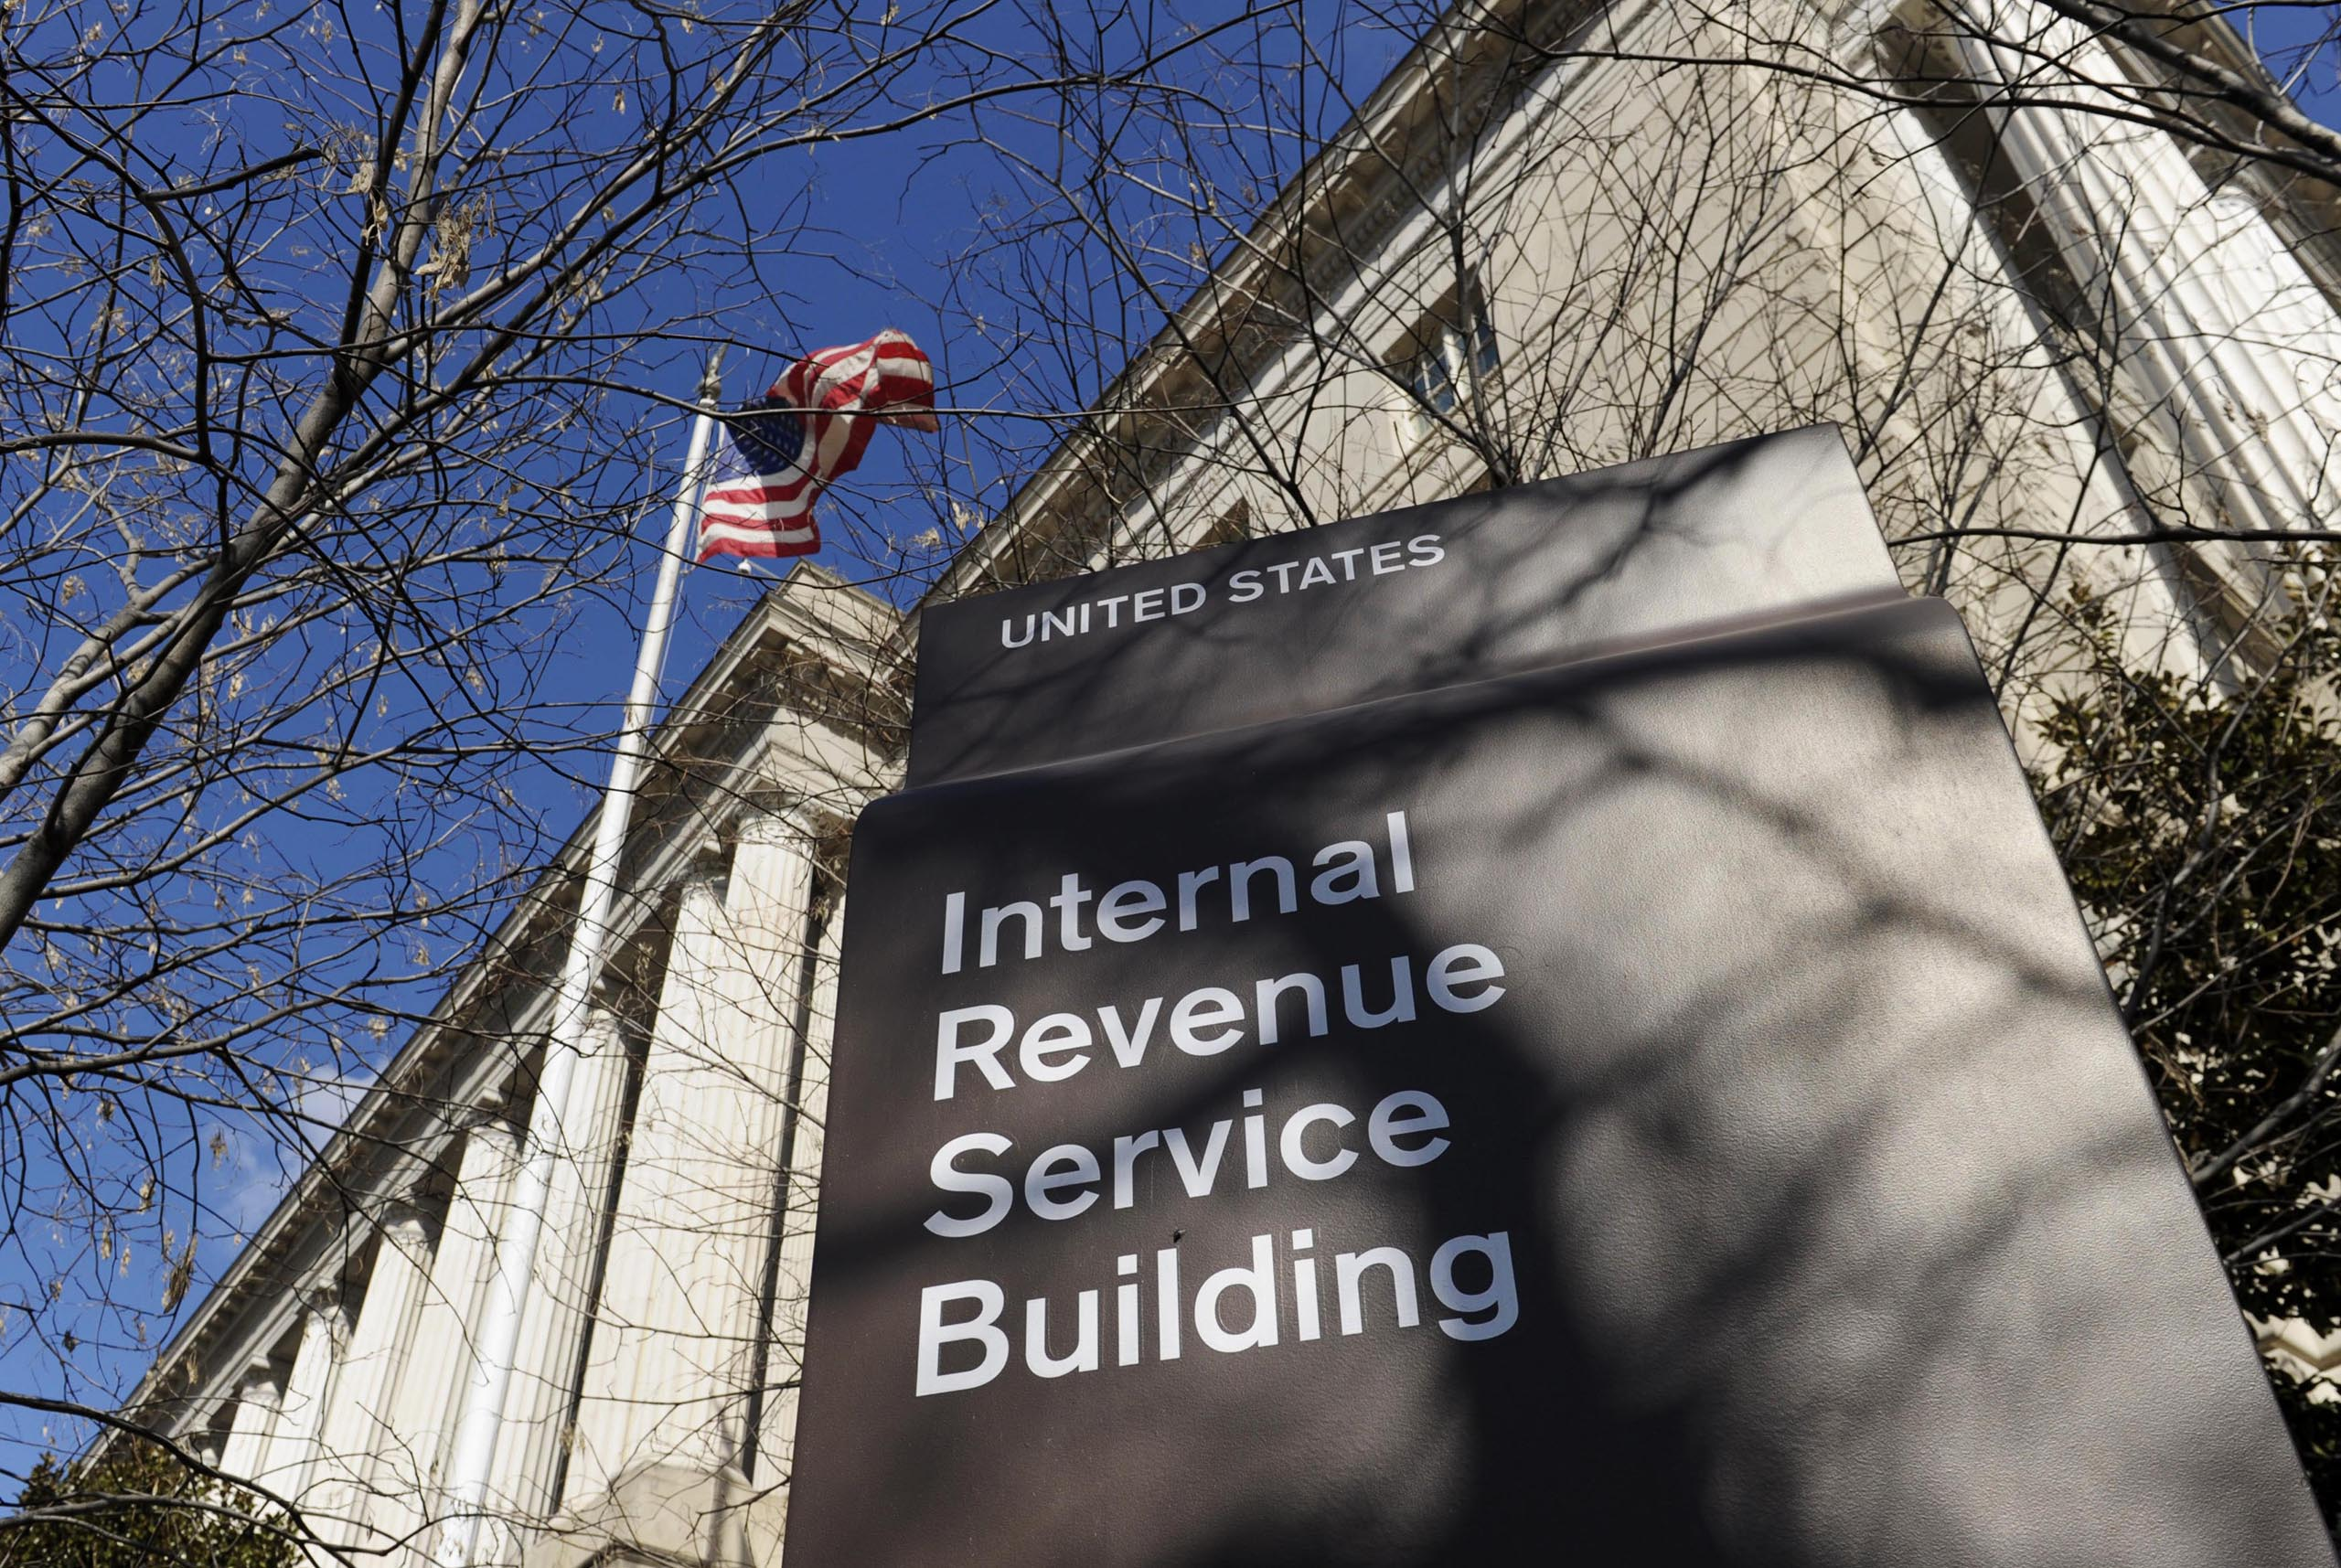 The IRS Email Sequence